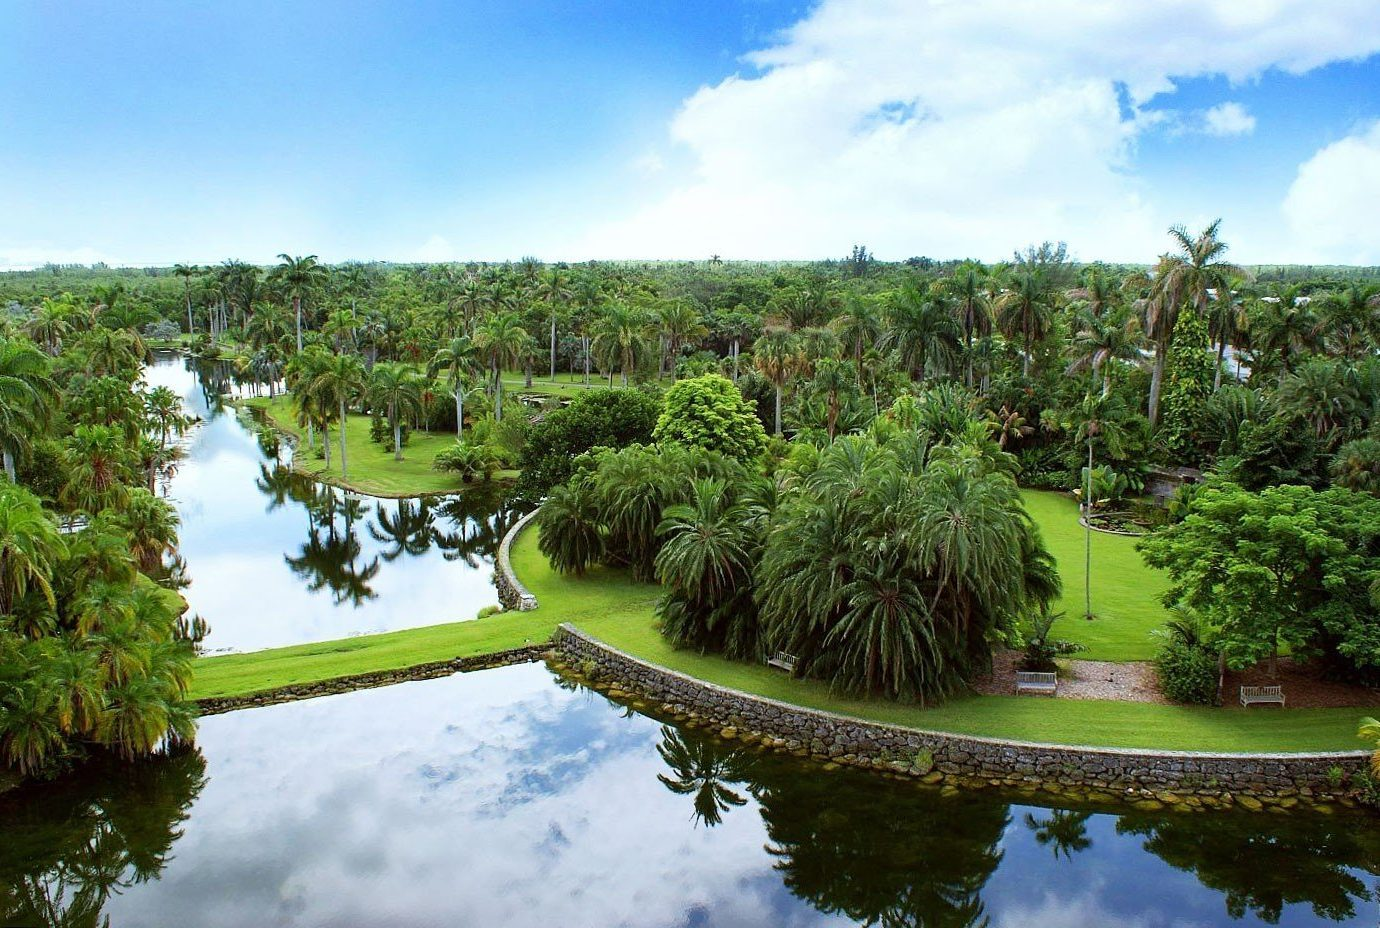 Offbeat tree sky water outdoor River Nature Boat structure pond reflection sport venue Lake estate golf course Garden botanical garden wetland Resort agriculture aerial photography Jungle park surrounded land